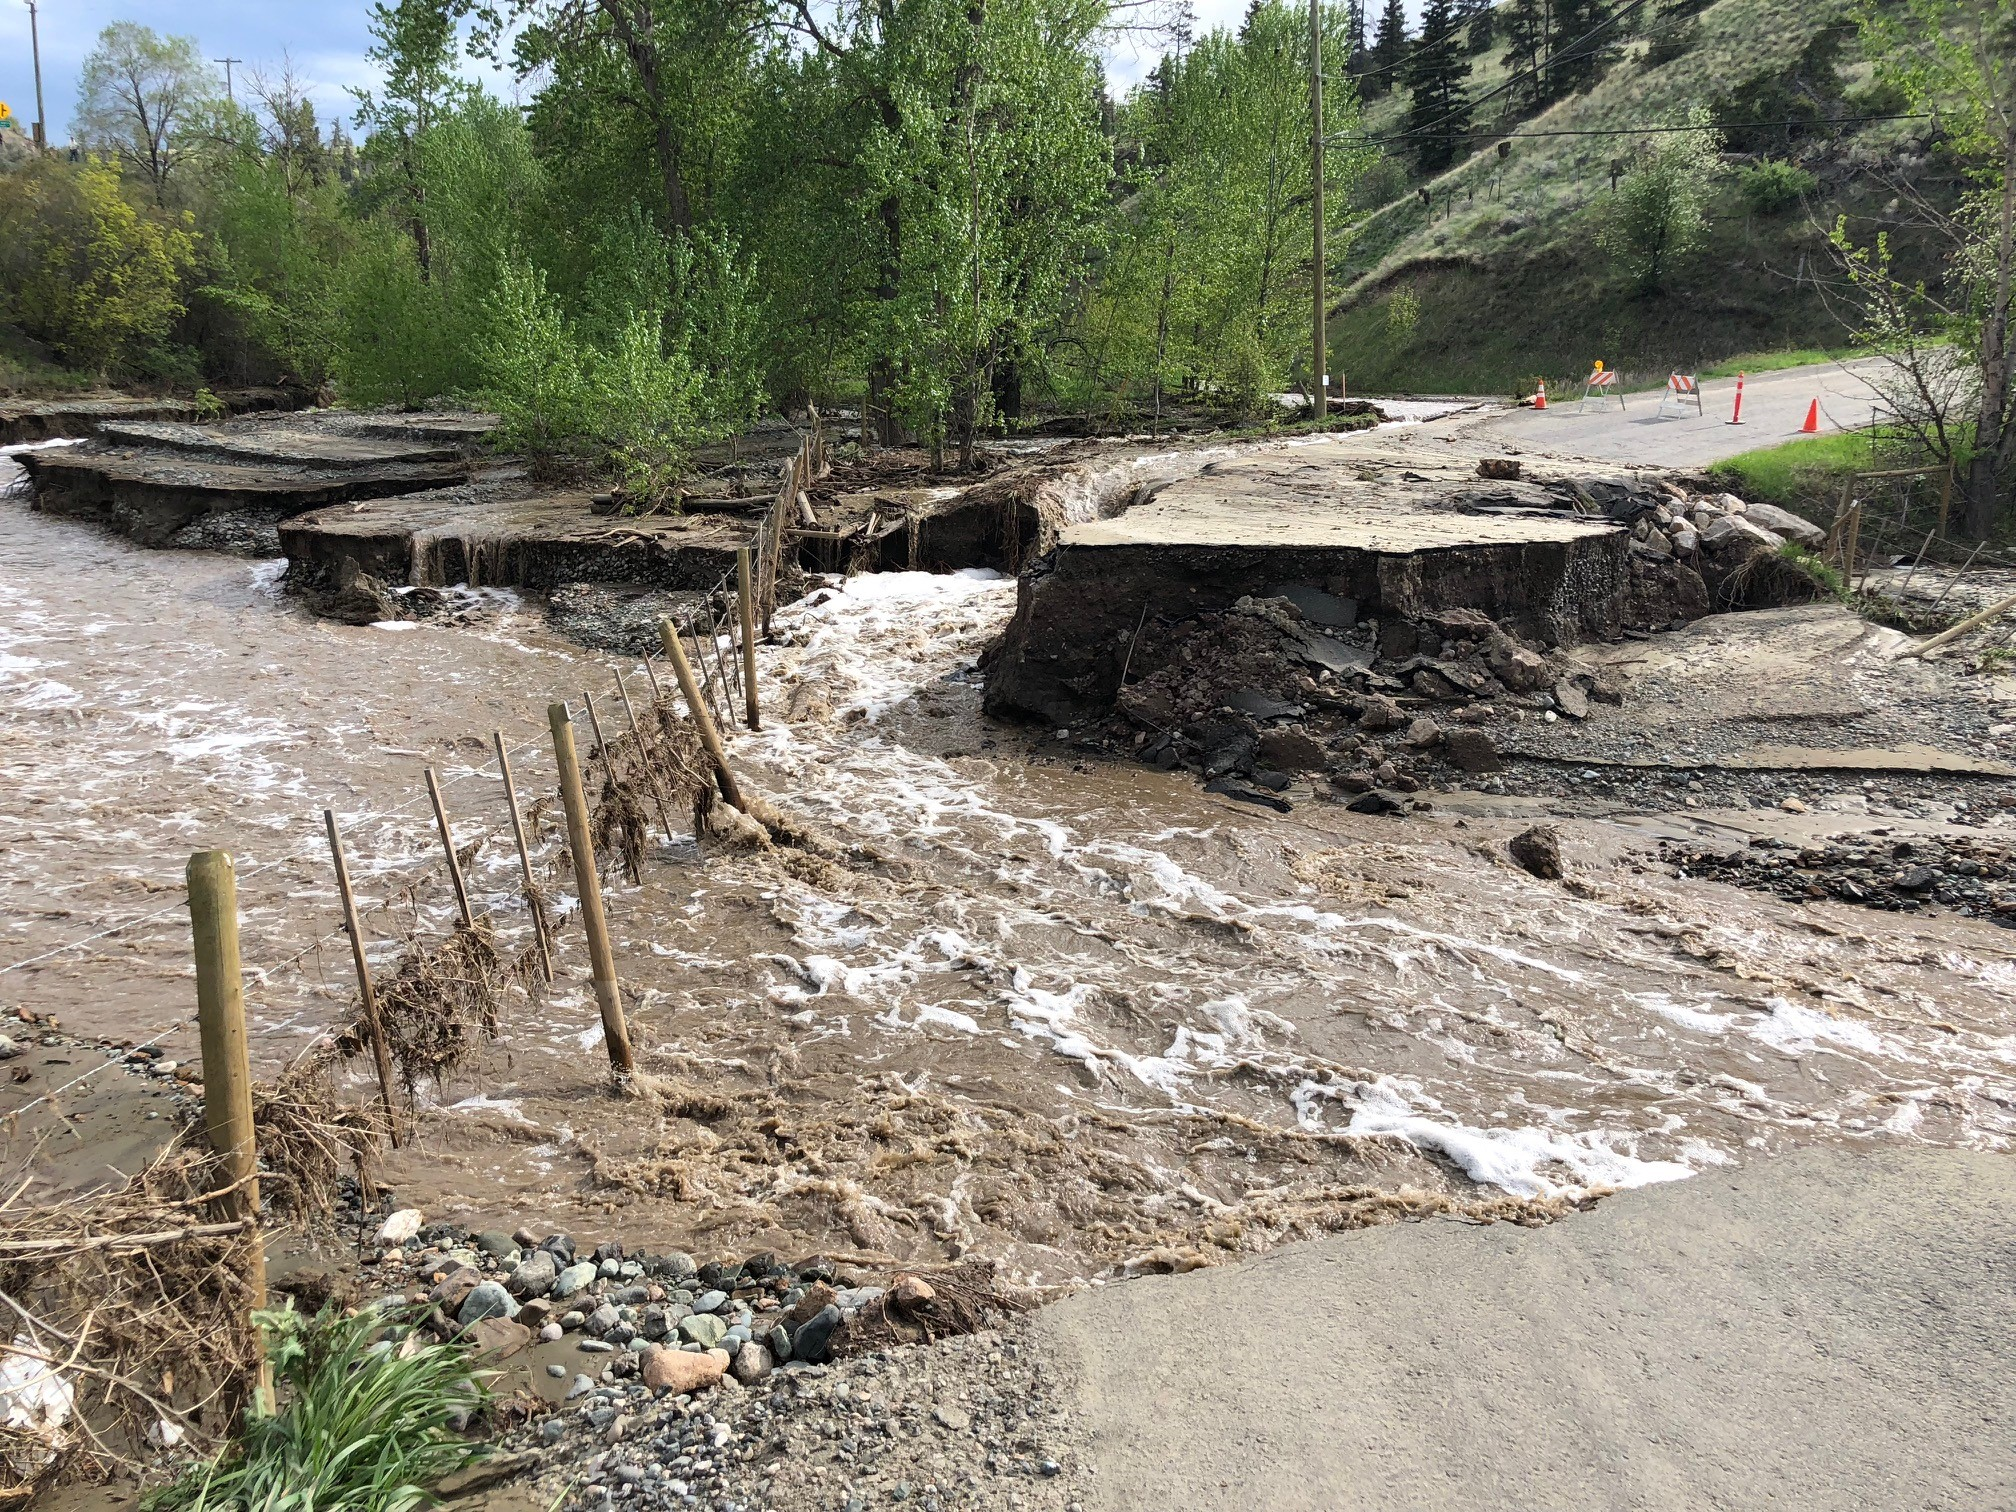 TNRD Director voicing concerns about future Cherry Creek flooding